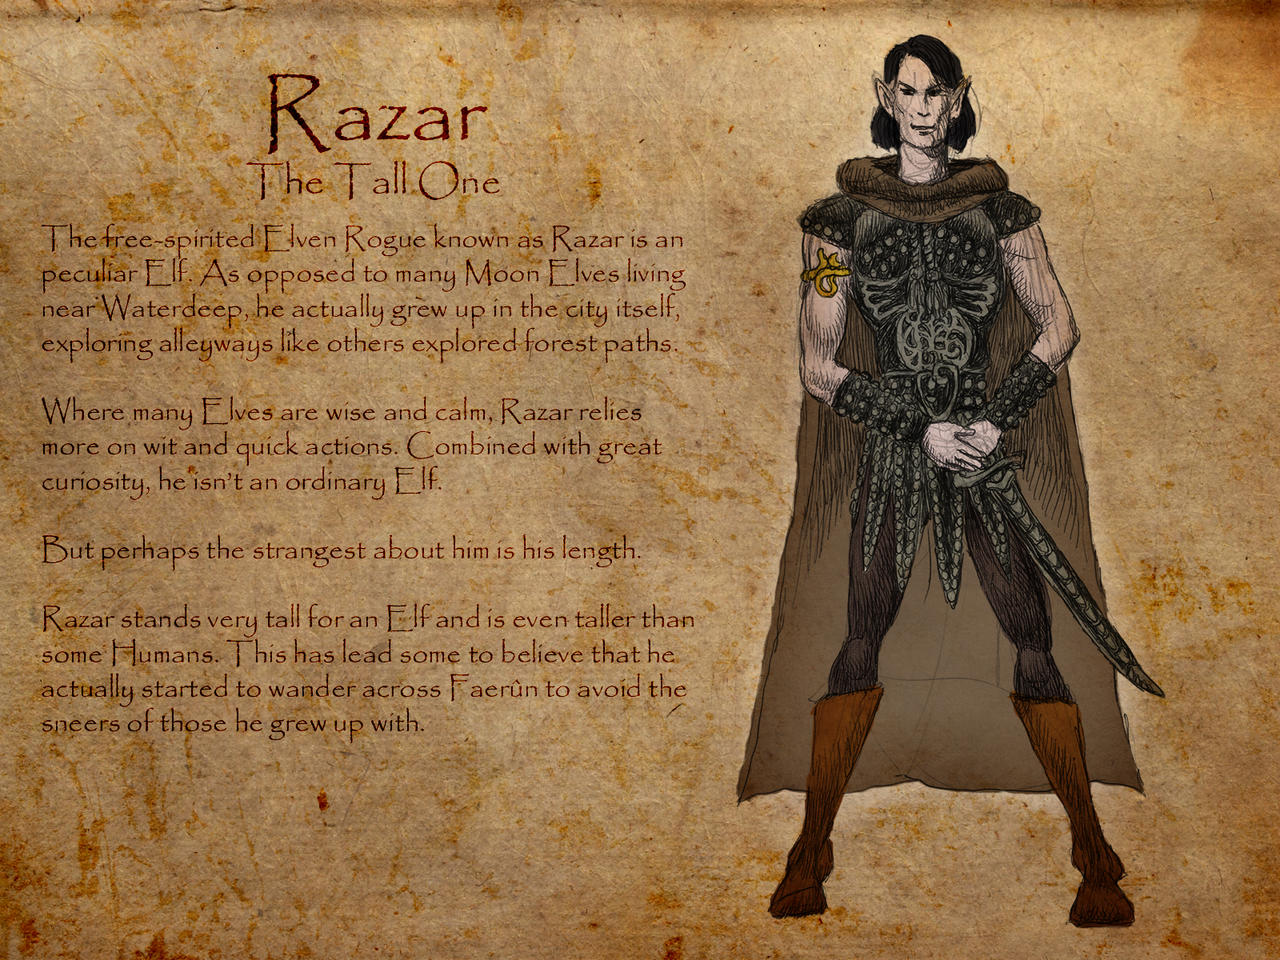 Dungeons and Dragons: Razar by Hellwolve